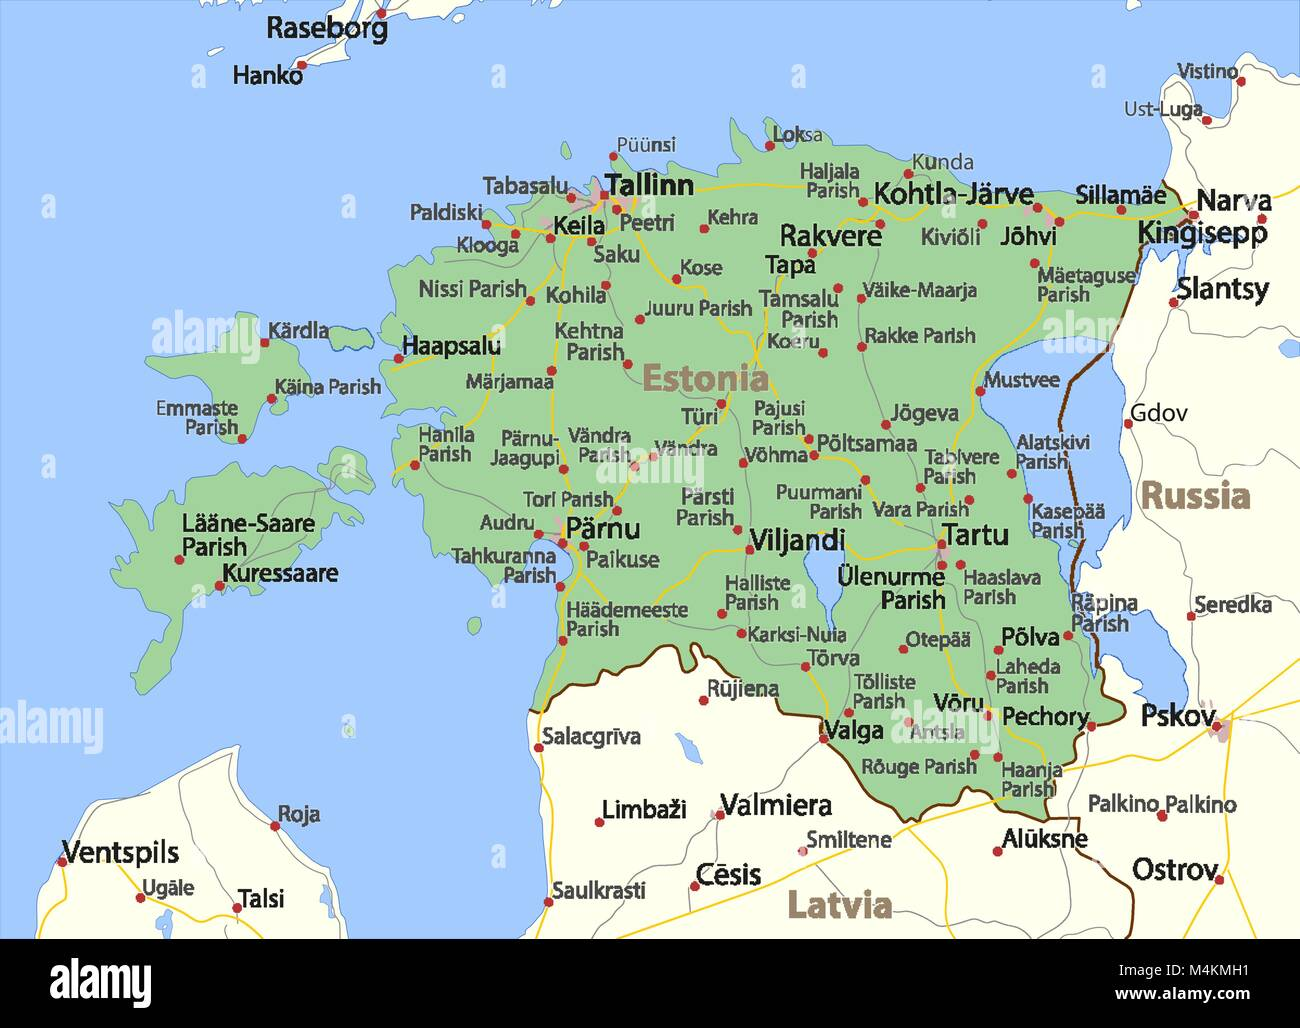 Map of Estonia. Shows country borders, urban areas, place ...